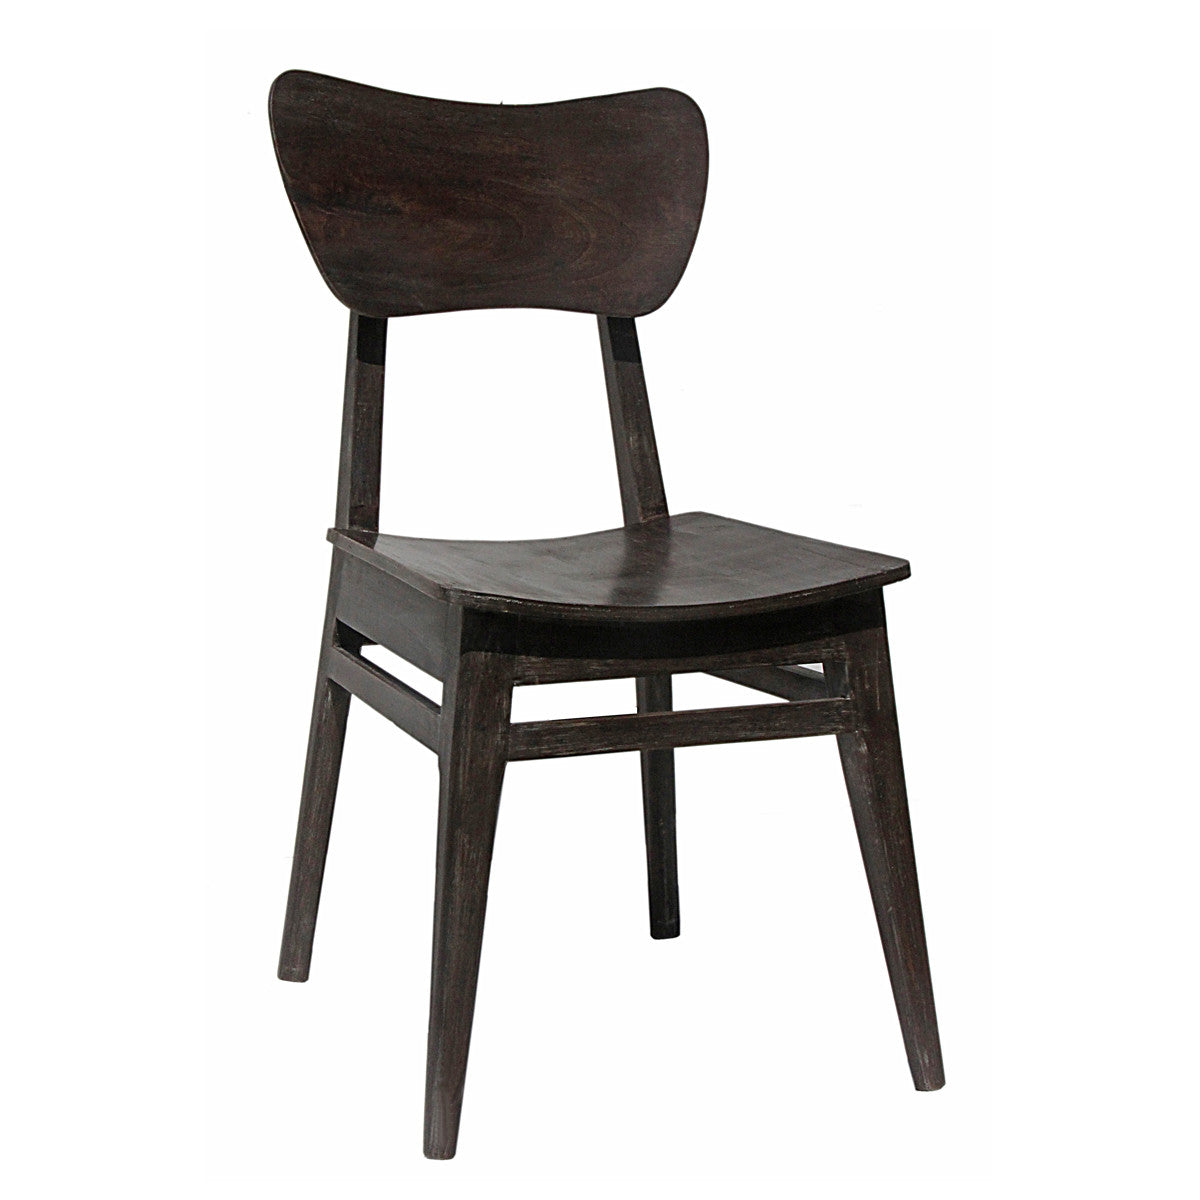 Delicieux Mod Wood Chair, Dark Grey Distress